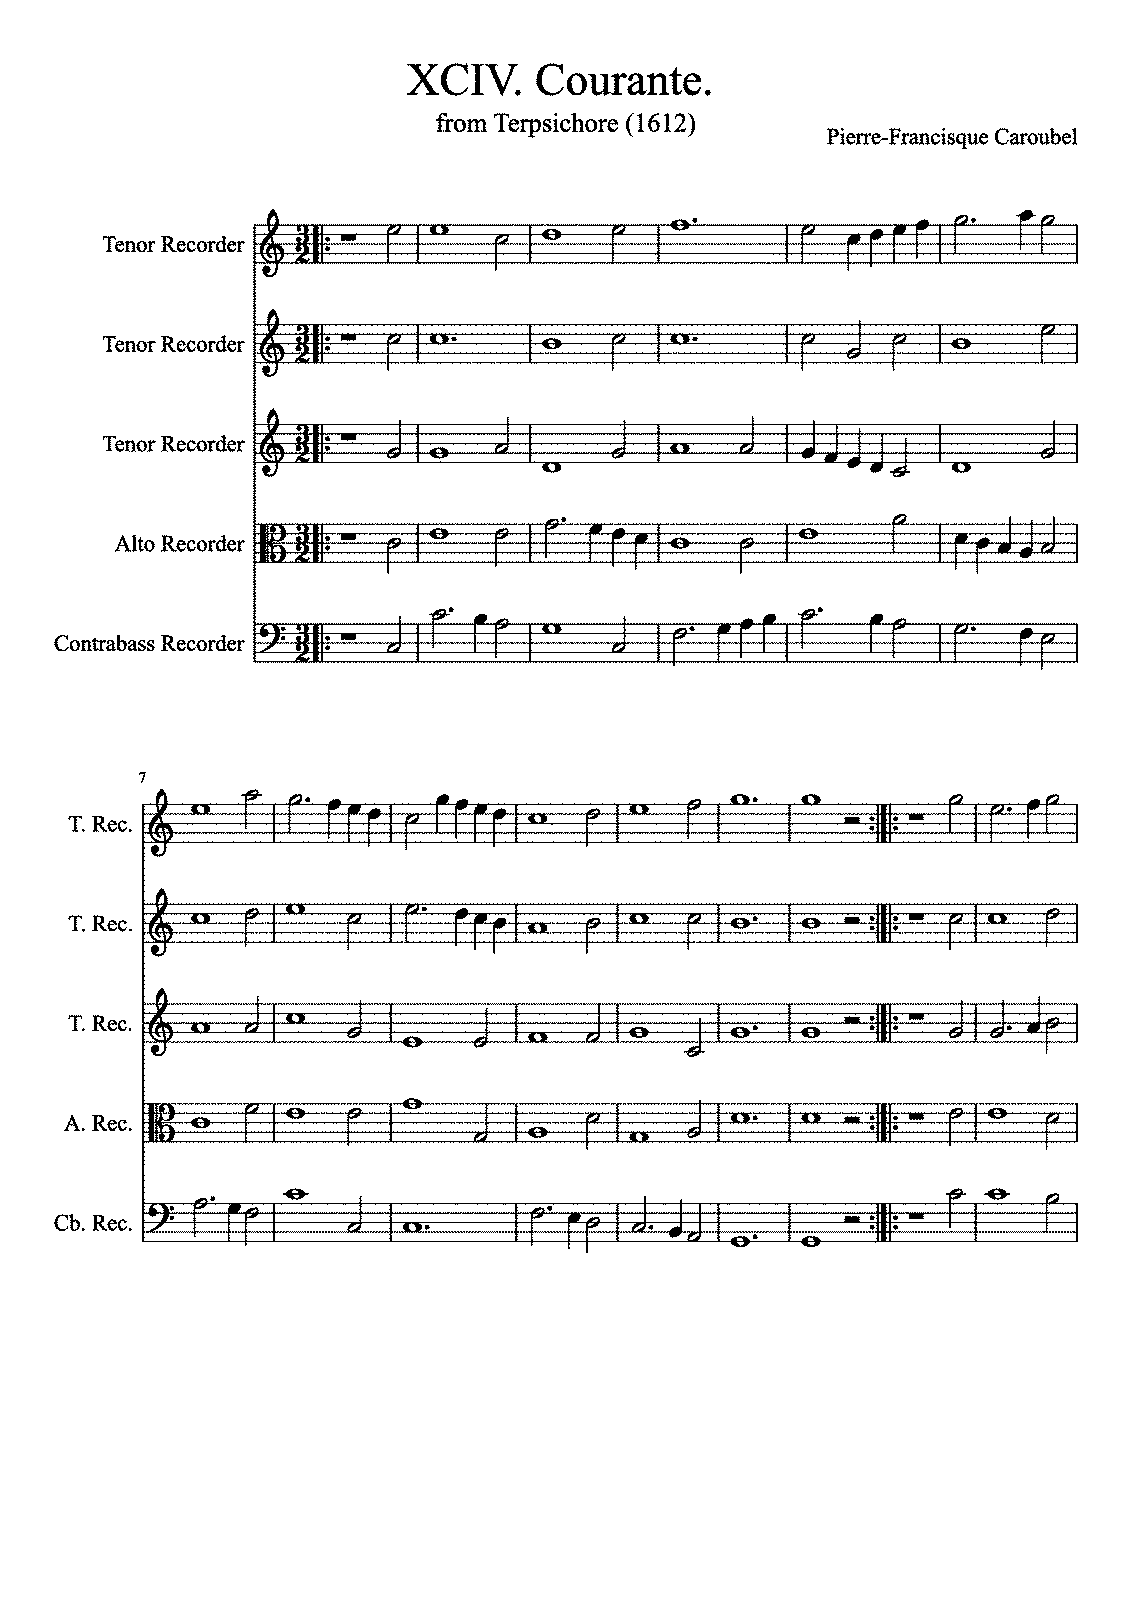 PMLP591870-XCIV Courante from Terpsichore Francisque Caroubel 1612.pdf